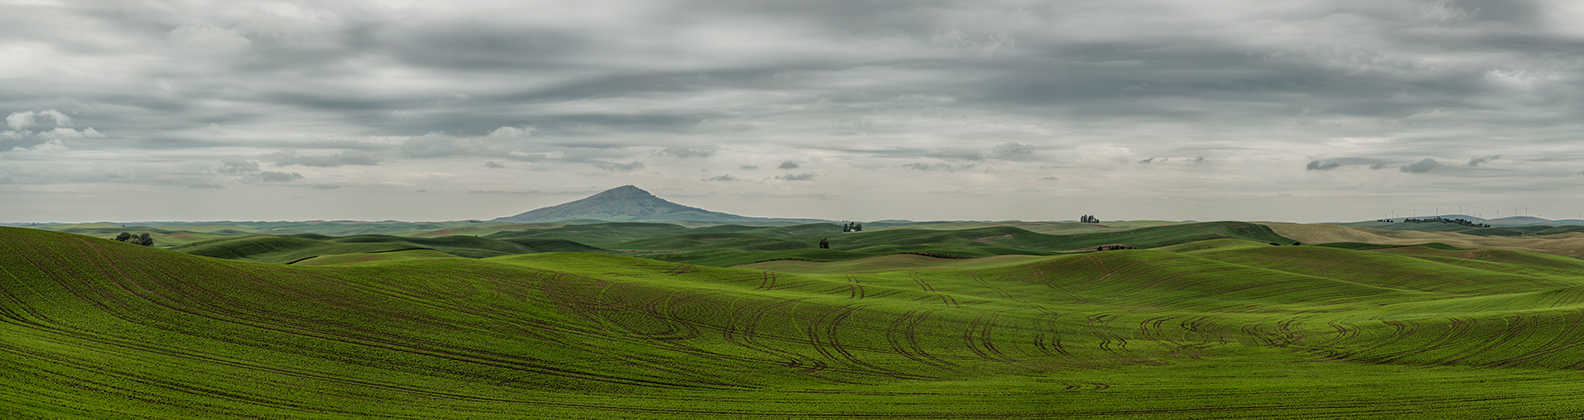 palouse_workshops_2014_133